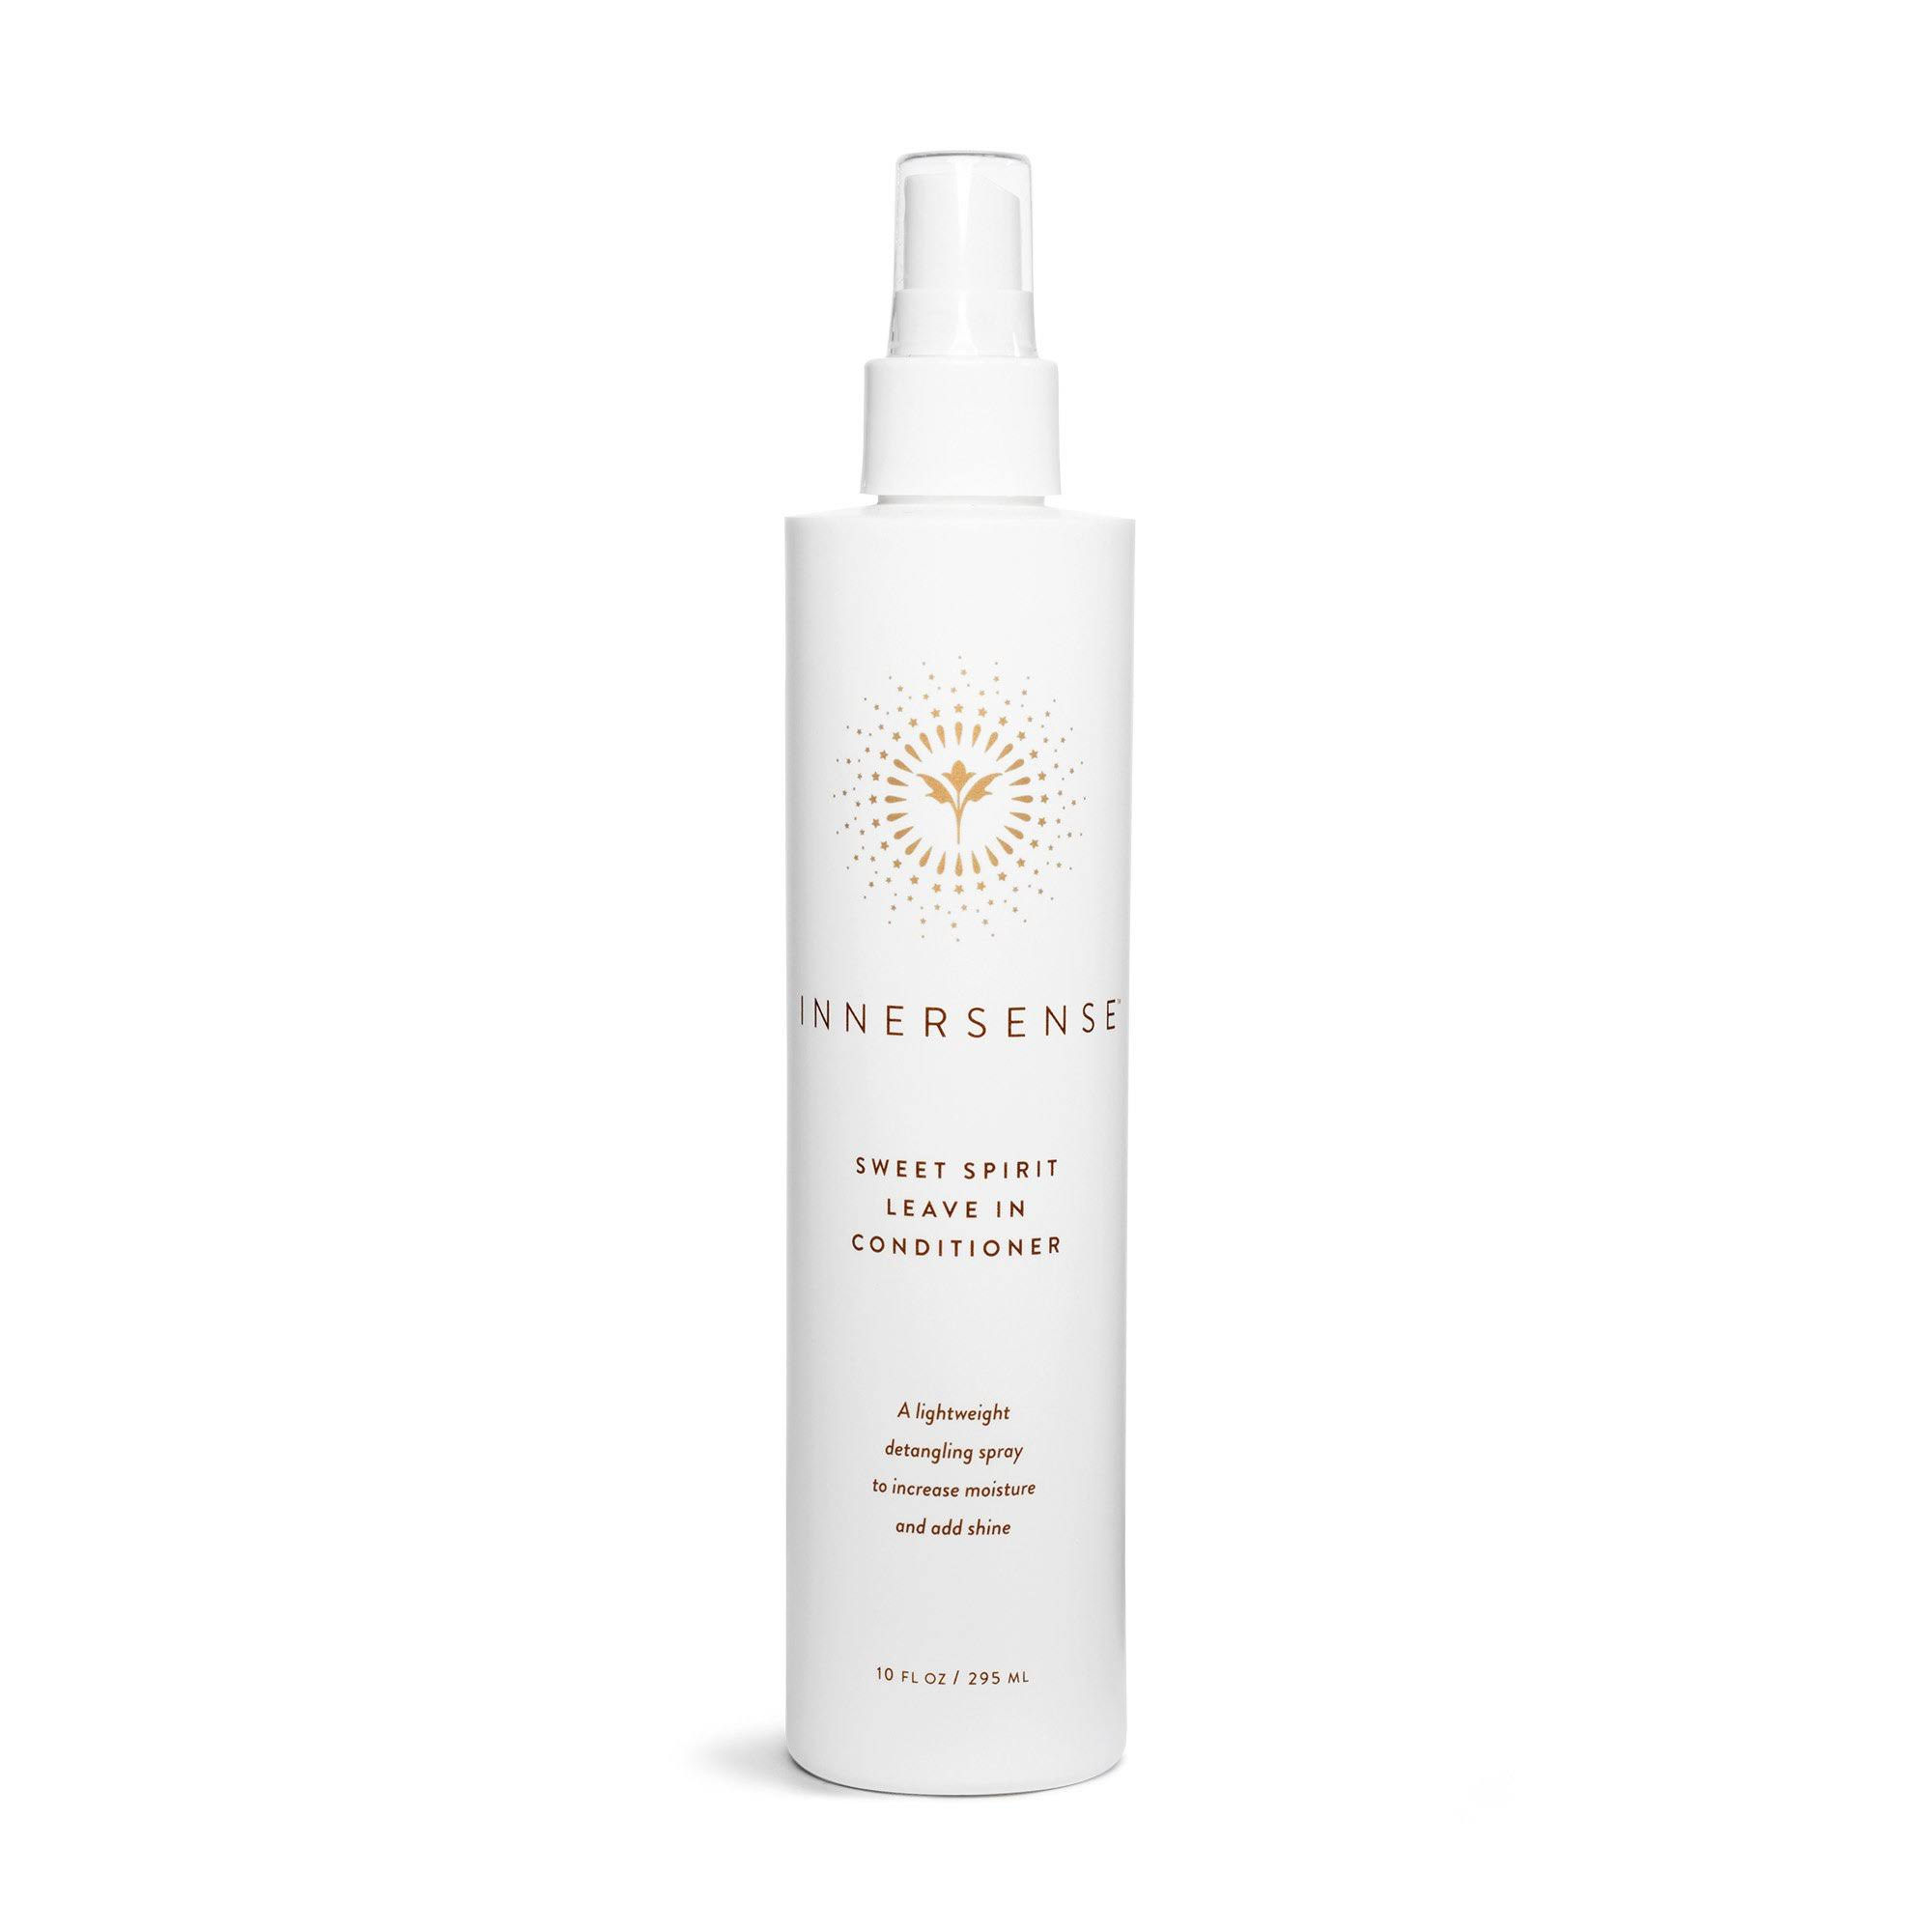 Innersense Sweet Spirit Leave-In Conditioner 10 oz